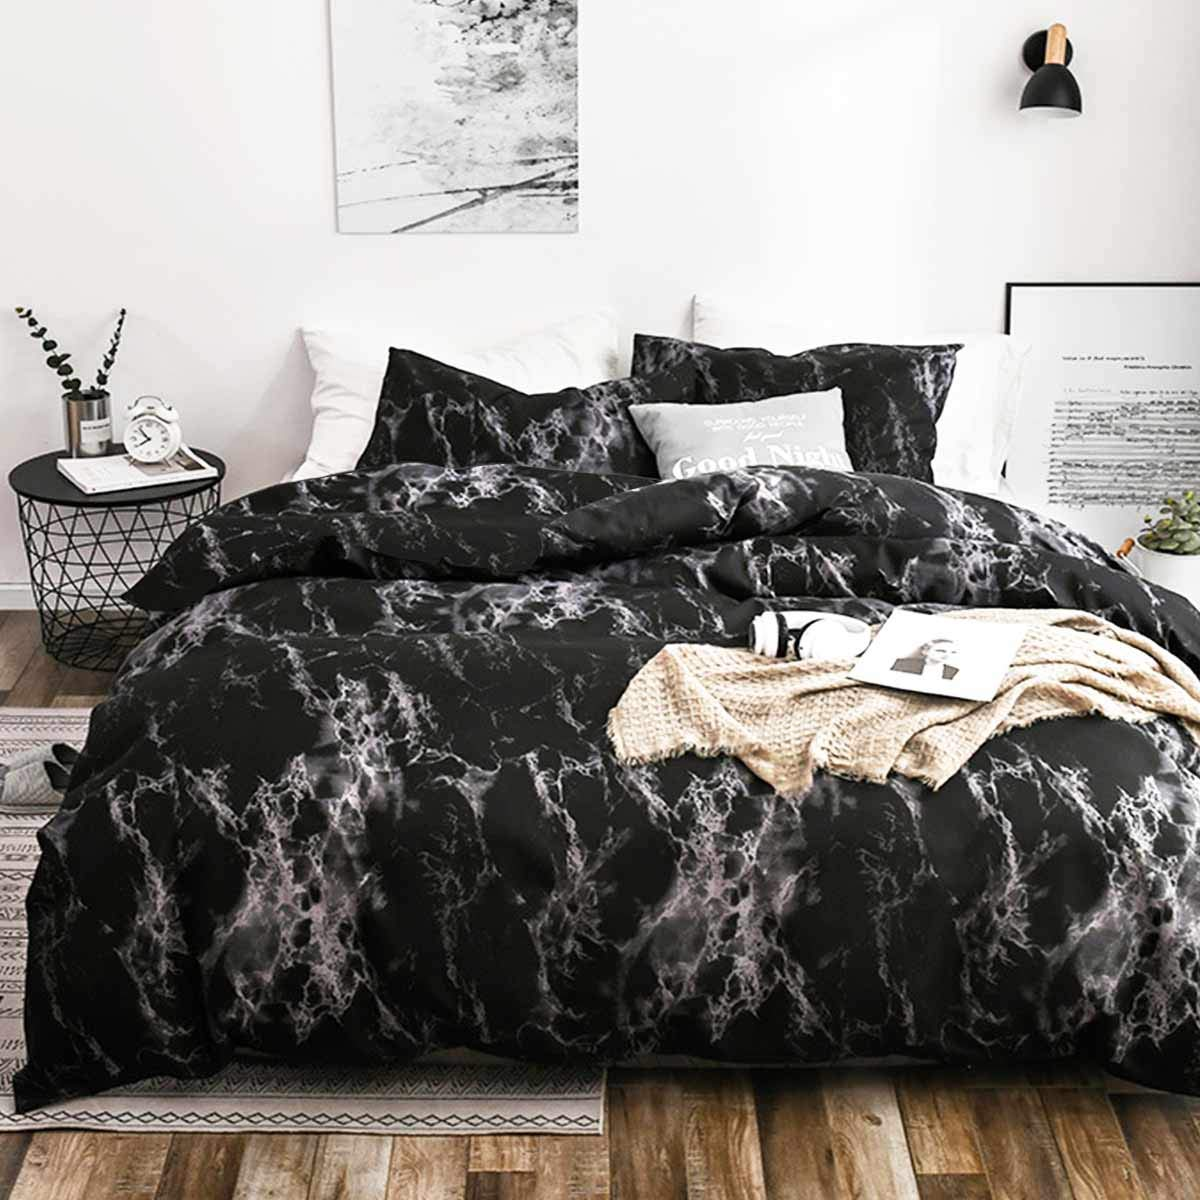 NANKO King Bedding Duvet Cover Set Dark Black Marble, 3 Piece - 1000 - TC Luxury Microfiber Quilt Cover with Zipper Closure, Ties - Best Organic Modern Style for Men and Women